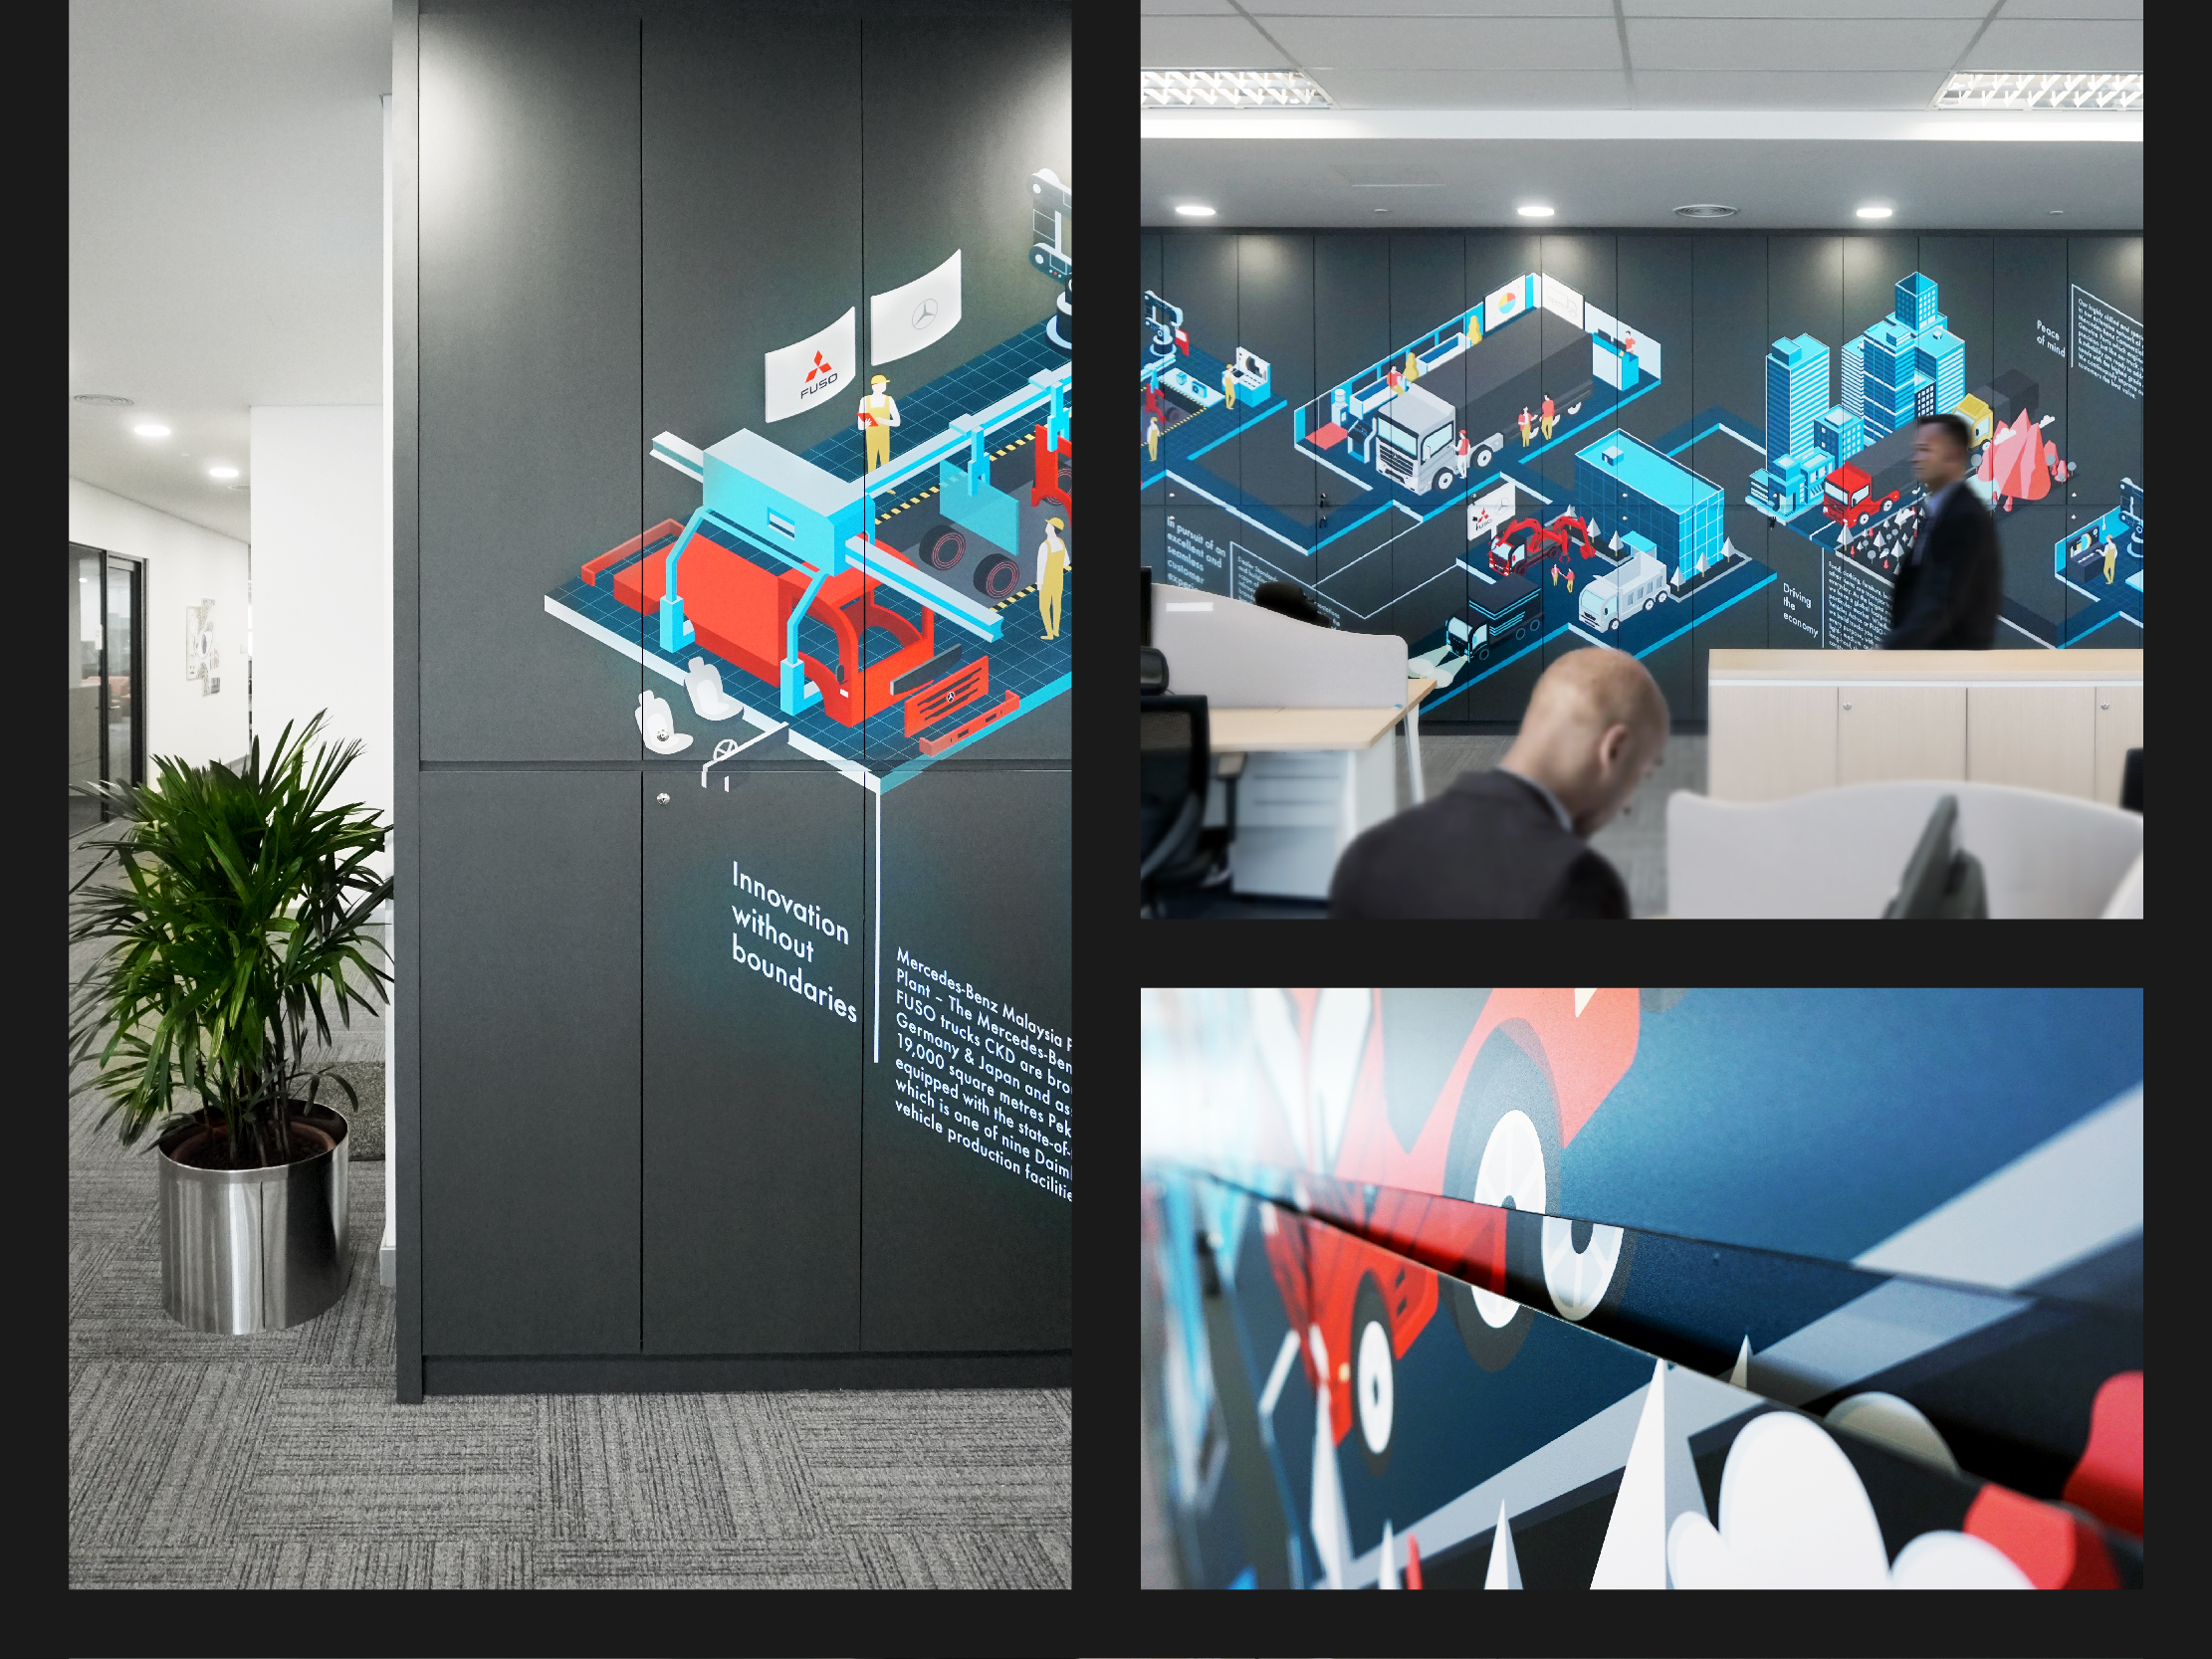 Mercedes-Benz wall art illustration design highlighting each part of their operations from assembly to sales and delivery printed on a wall of locker storage cupboard corner view, front view with people working and walking pass and an up close detail of the gap printing for a seamless visual view.